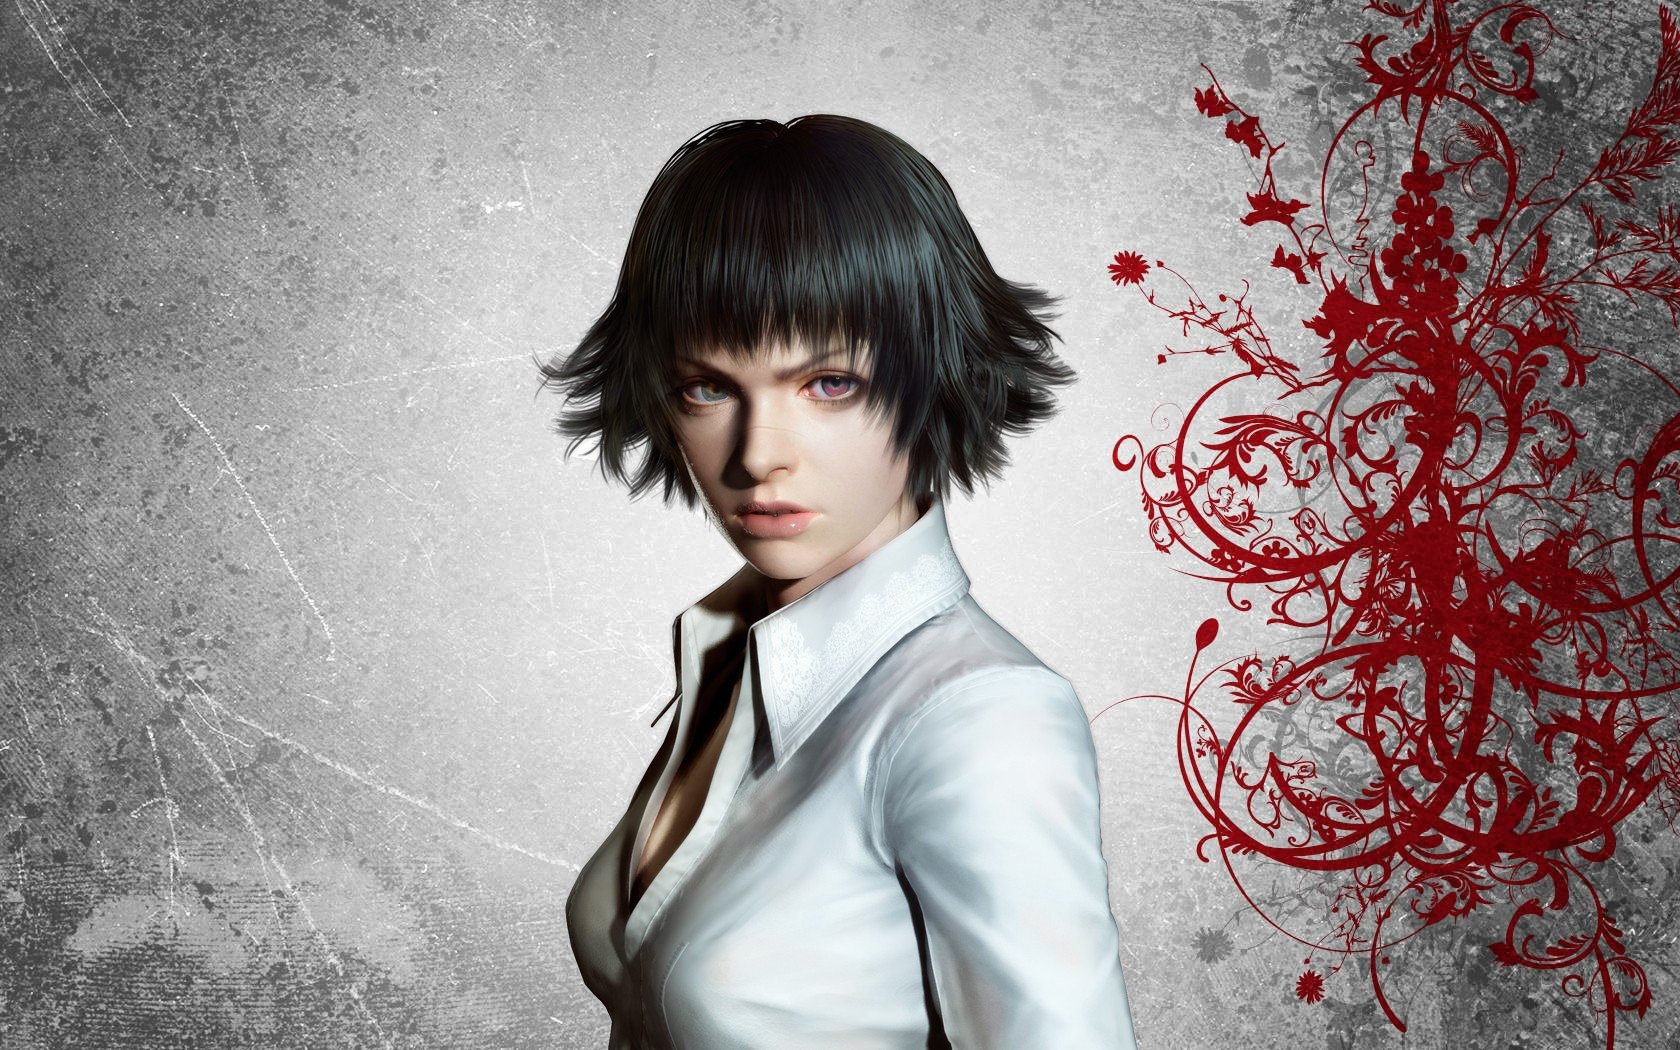 Devil May Cry Lady Devil May Cry Hd Wallpapers Desktop And